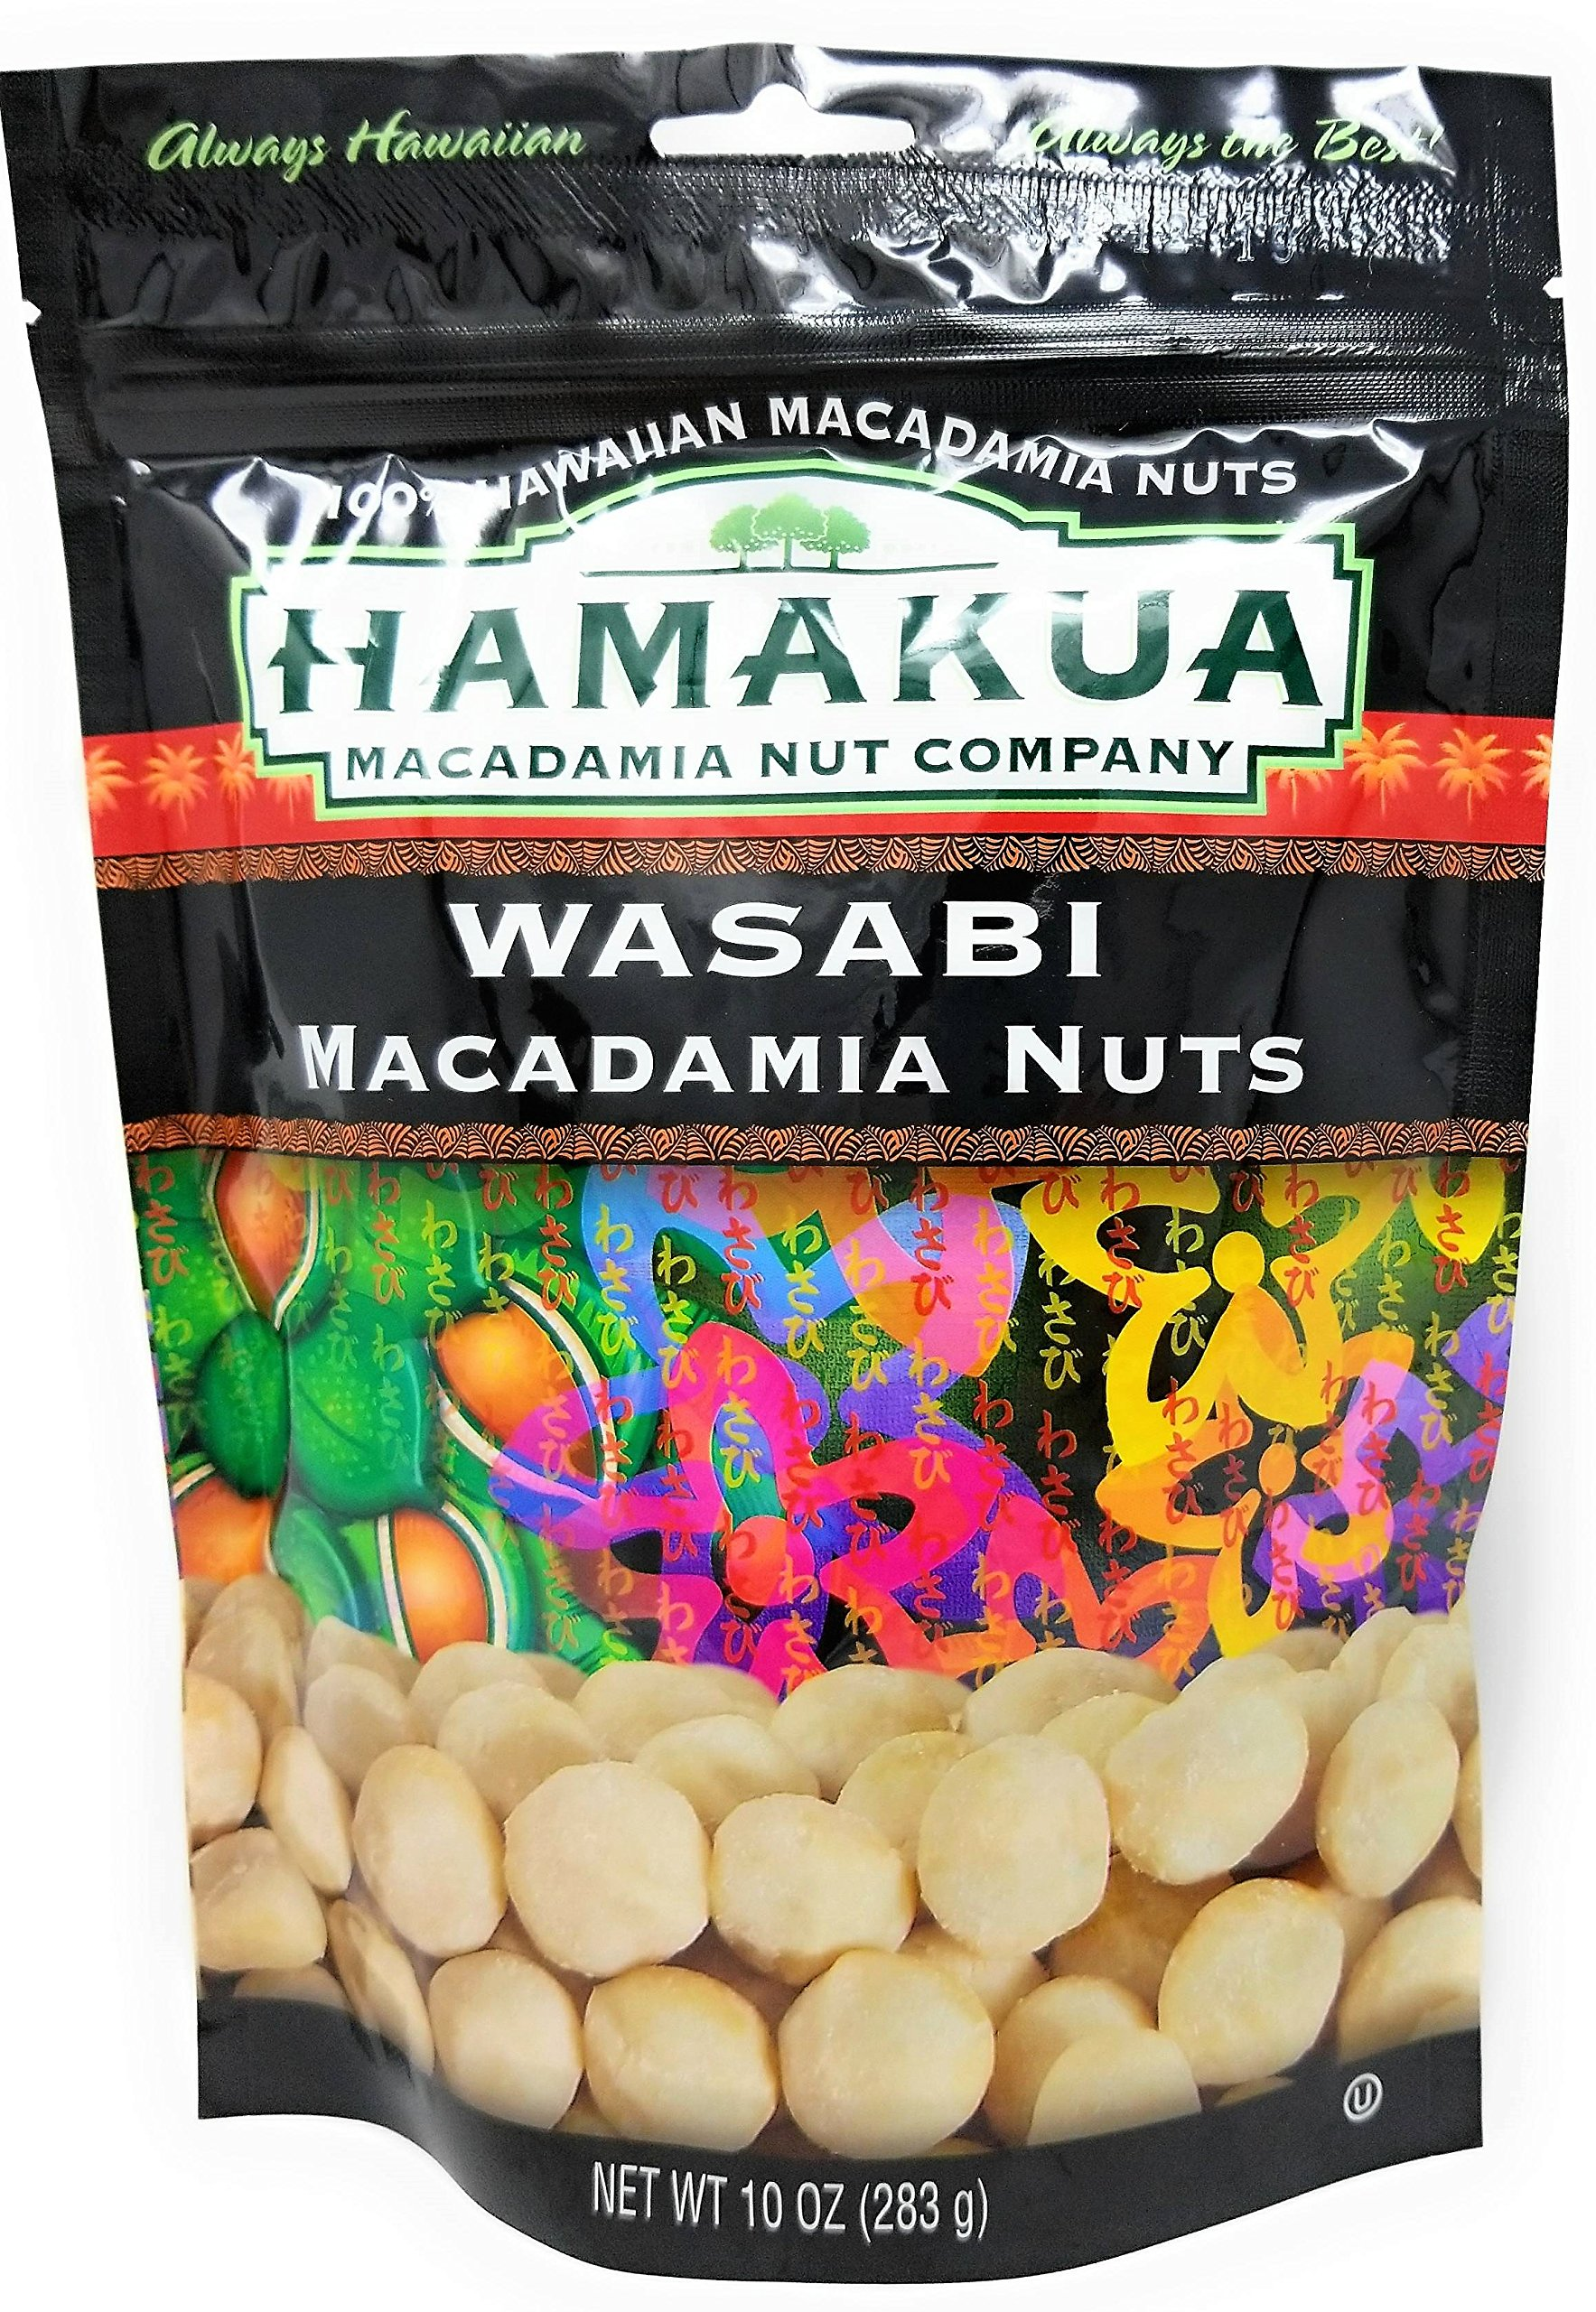 Hawaii Hamakua Plantations Macadamia Nuts Wasabi 10 oz. Bag